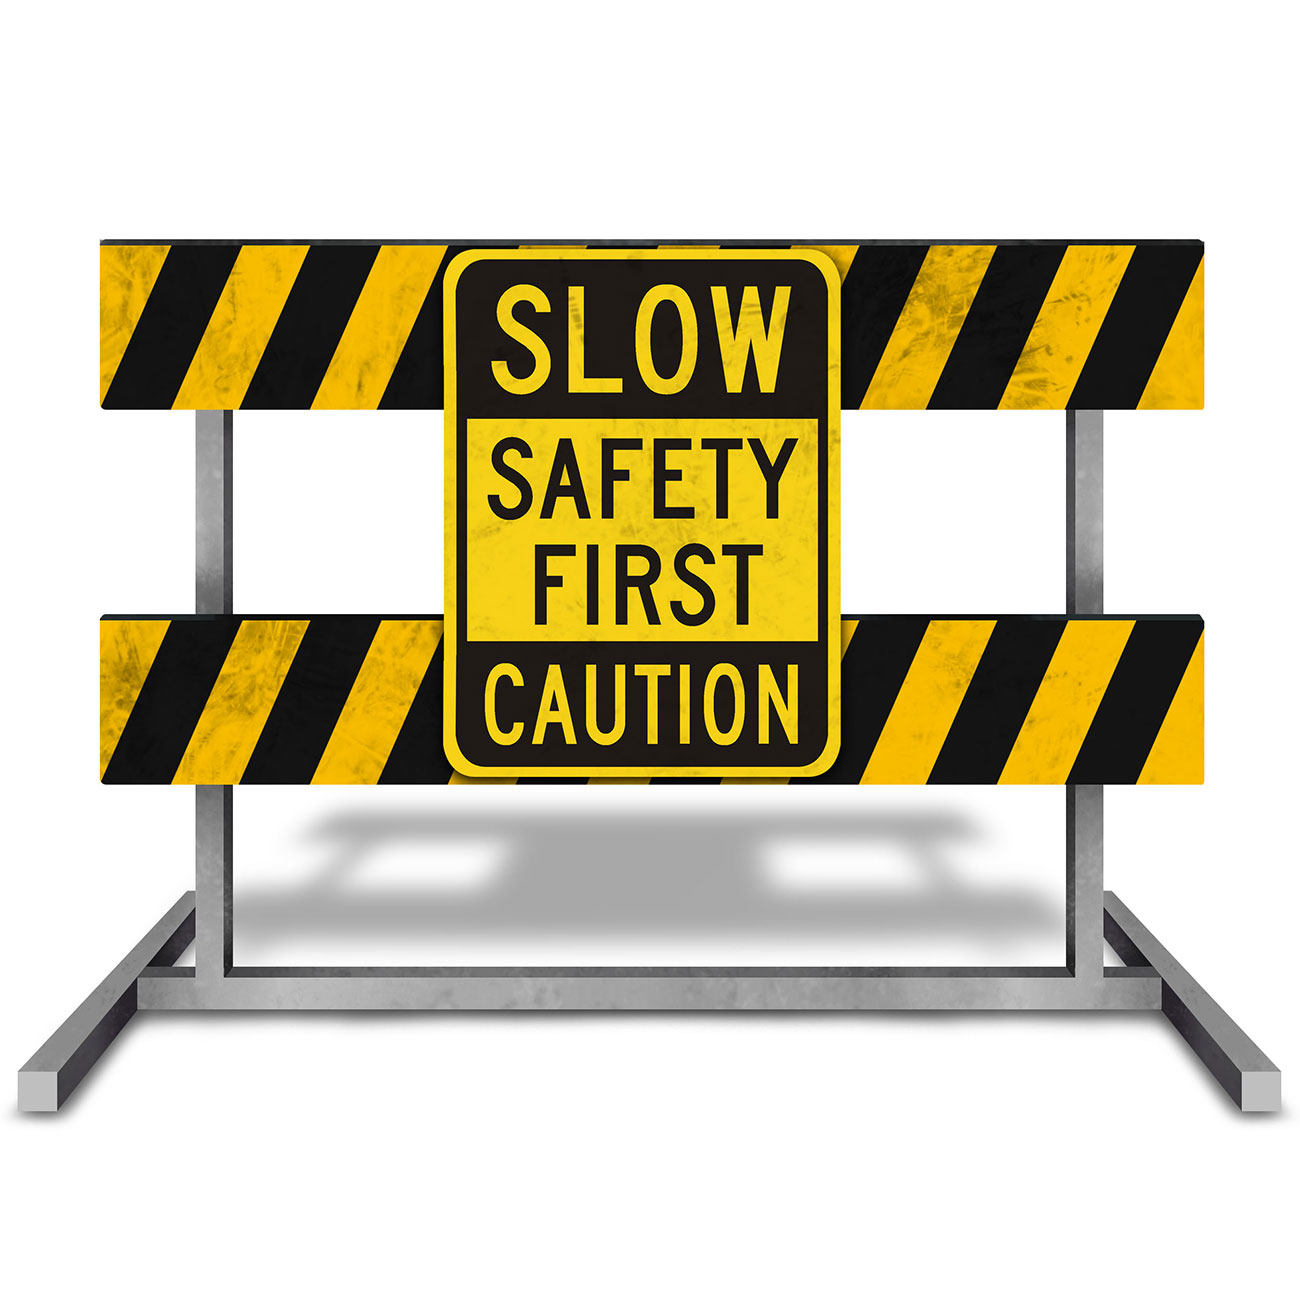 Safety slow